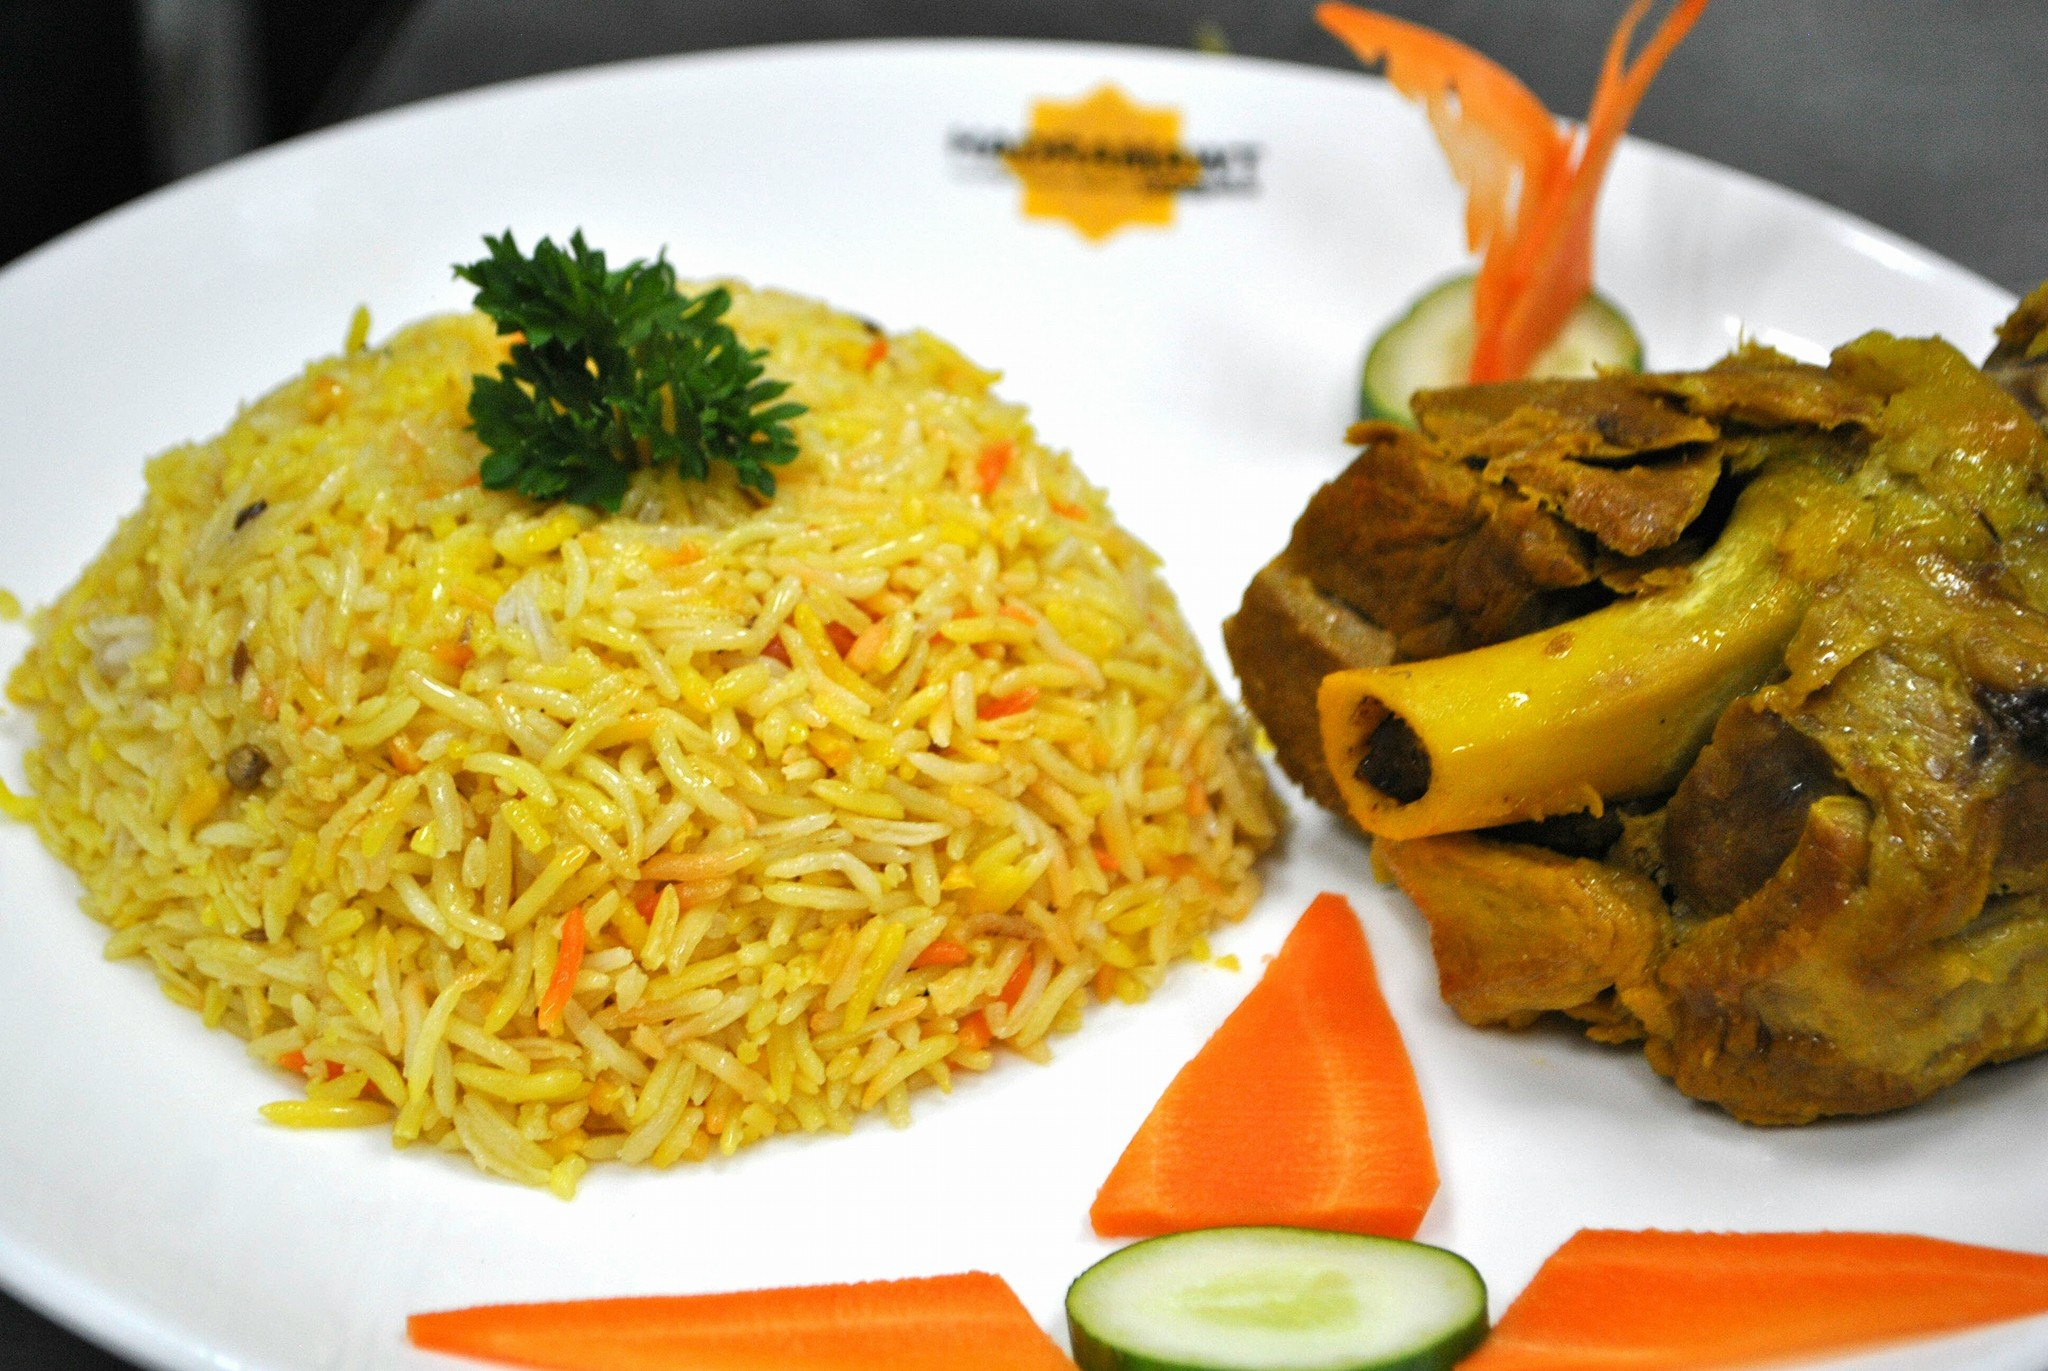 Image from Hadramawt Restaurant & Catering/Facebook